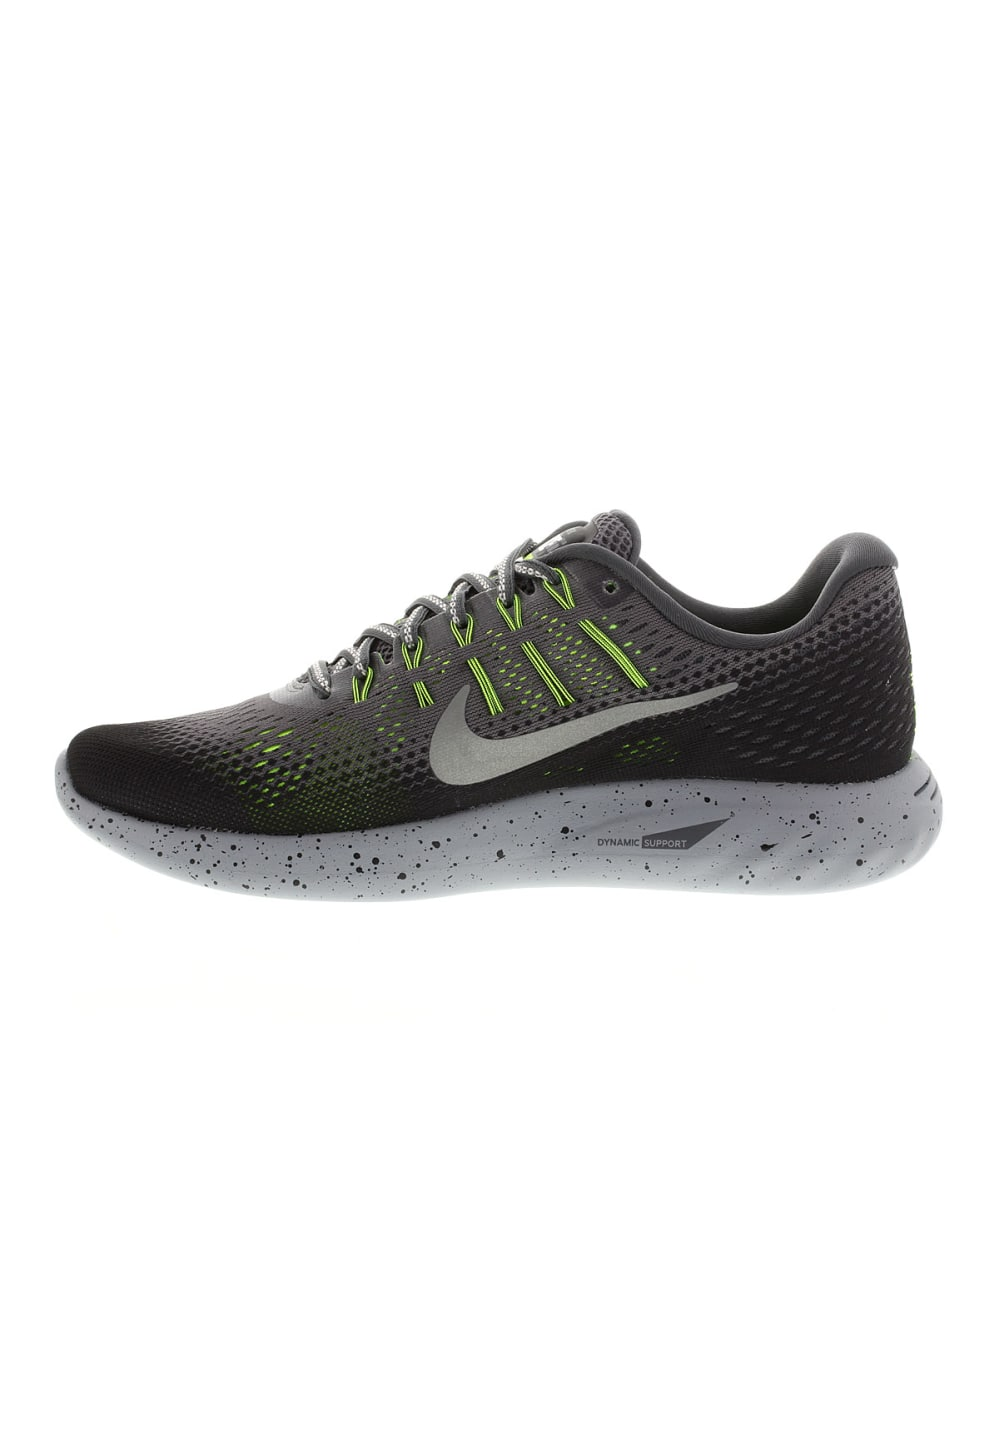 quality design b4ab2 07257 Next. Nike. Lunarglide 8 Shield - Chaussures running ...